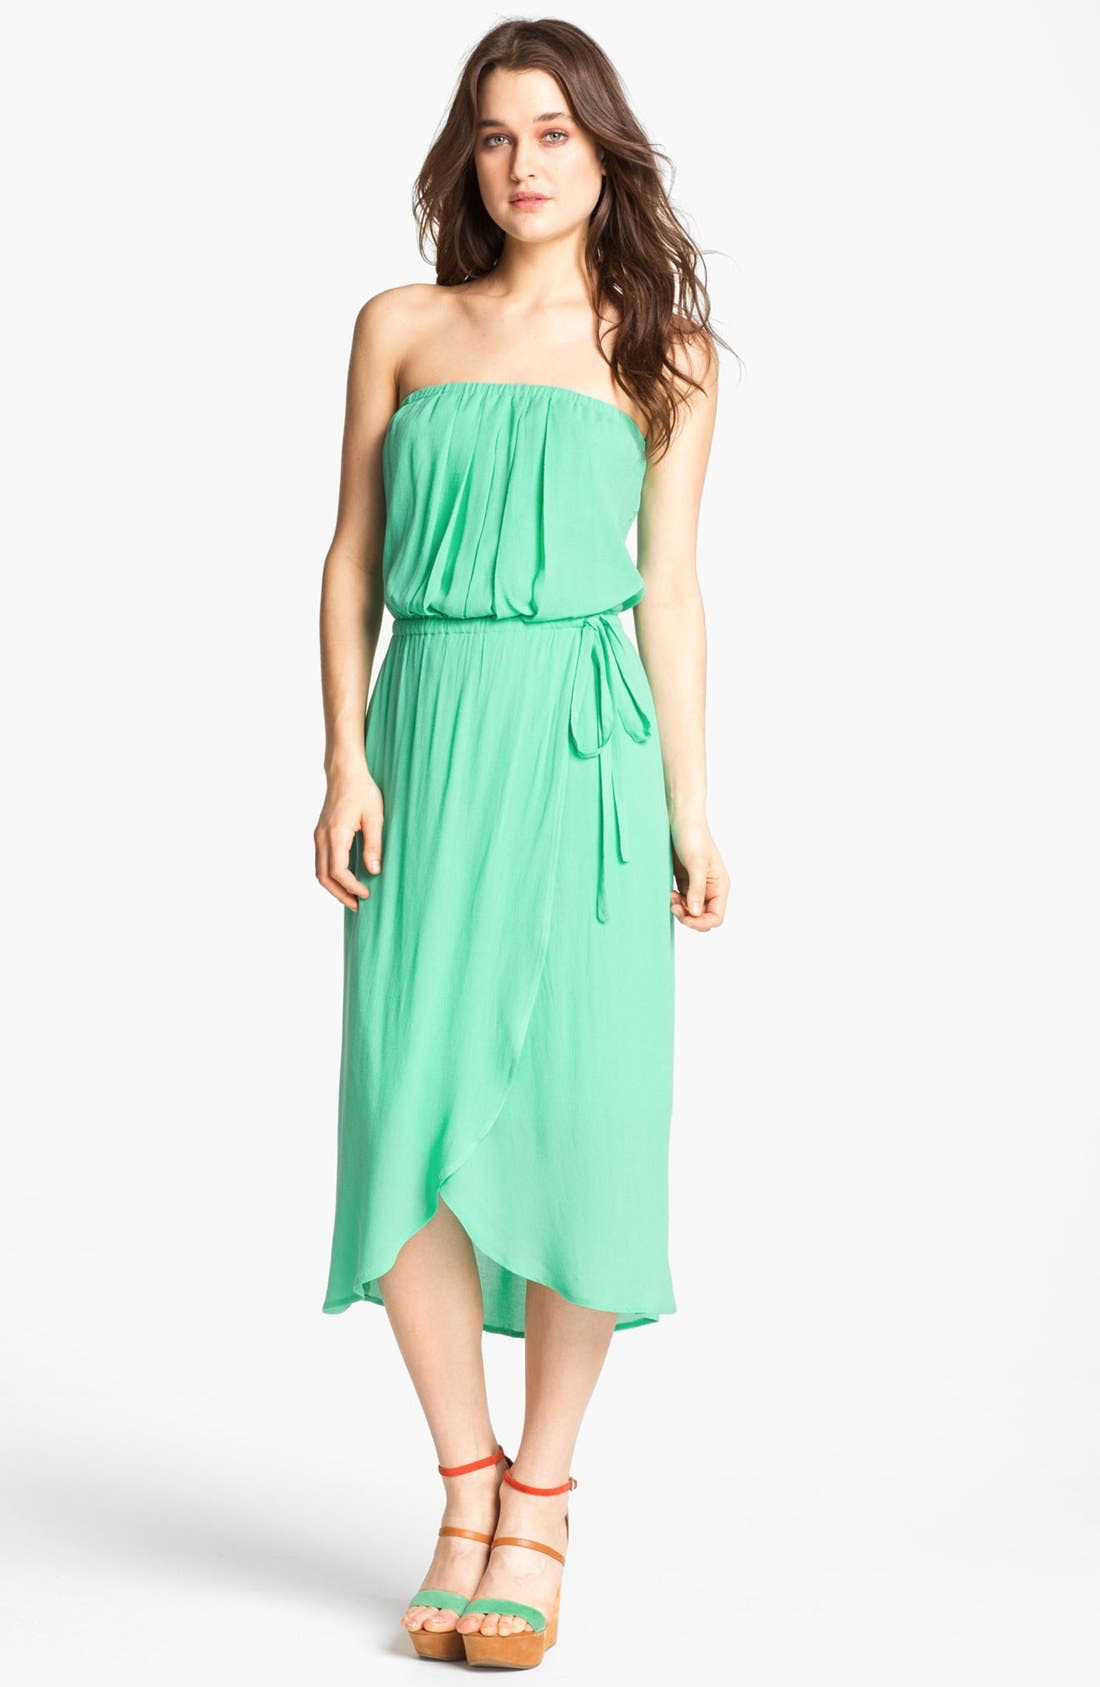 Alternate Image 1 Selected - Ella Moss Strapless Faux Wrap Dress